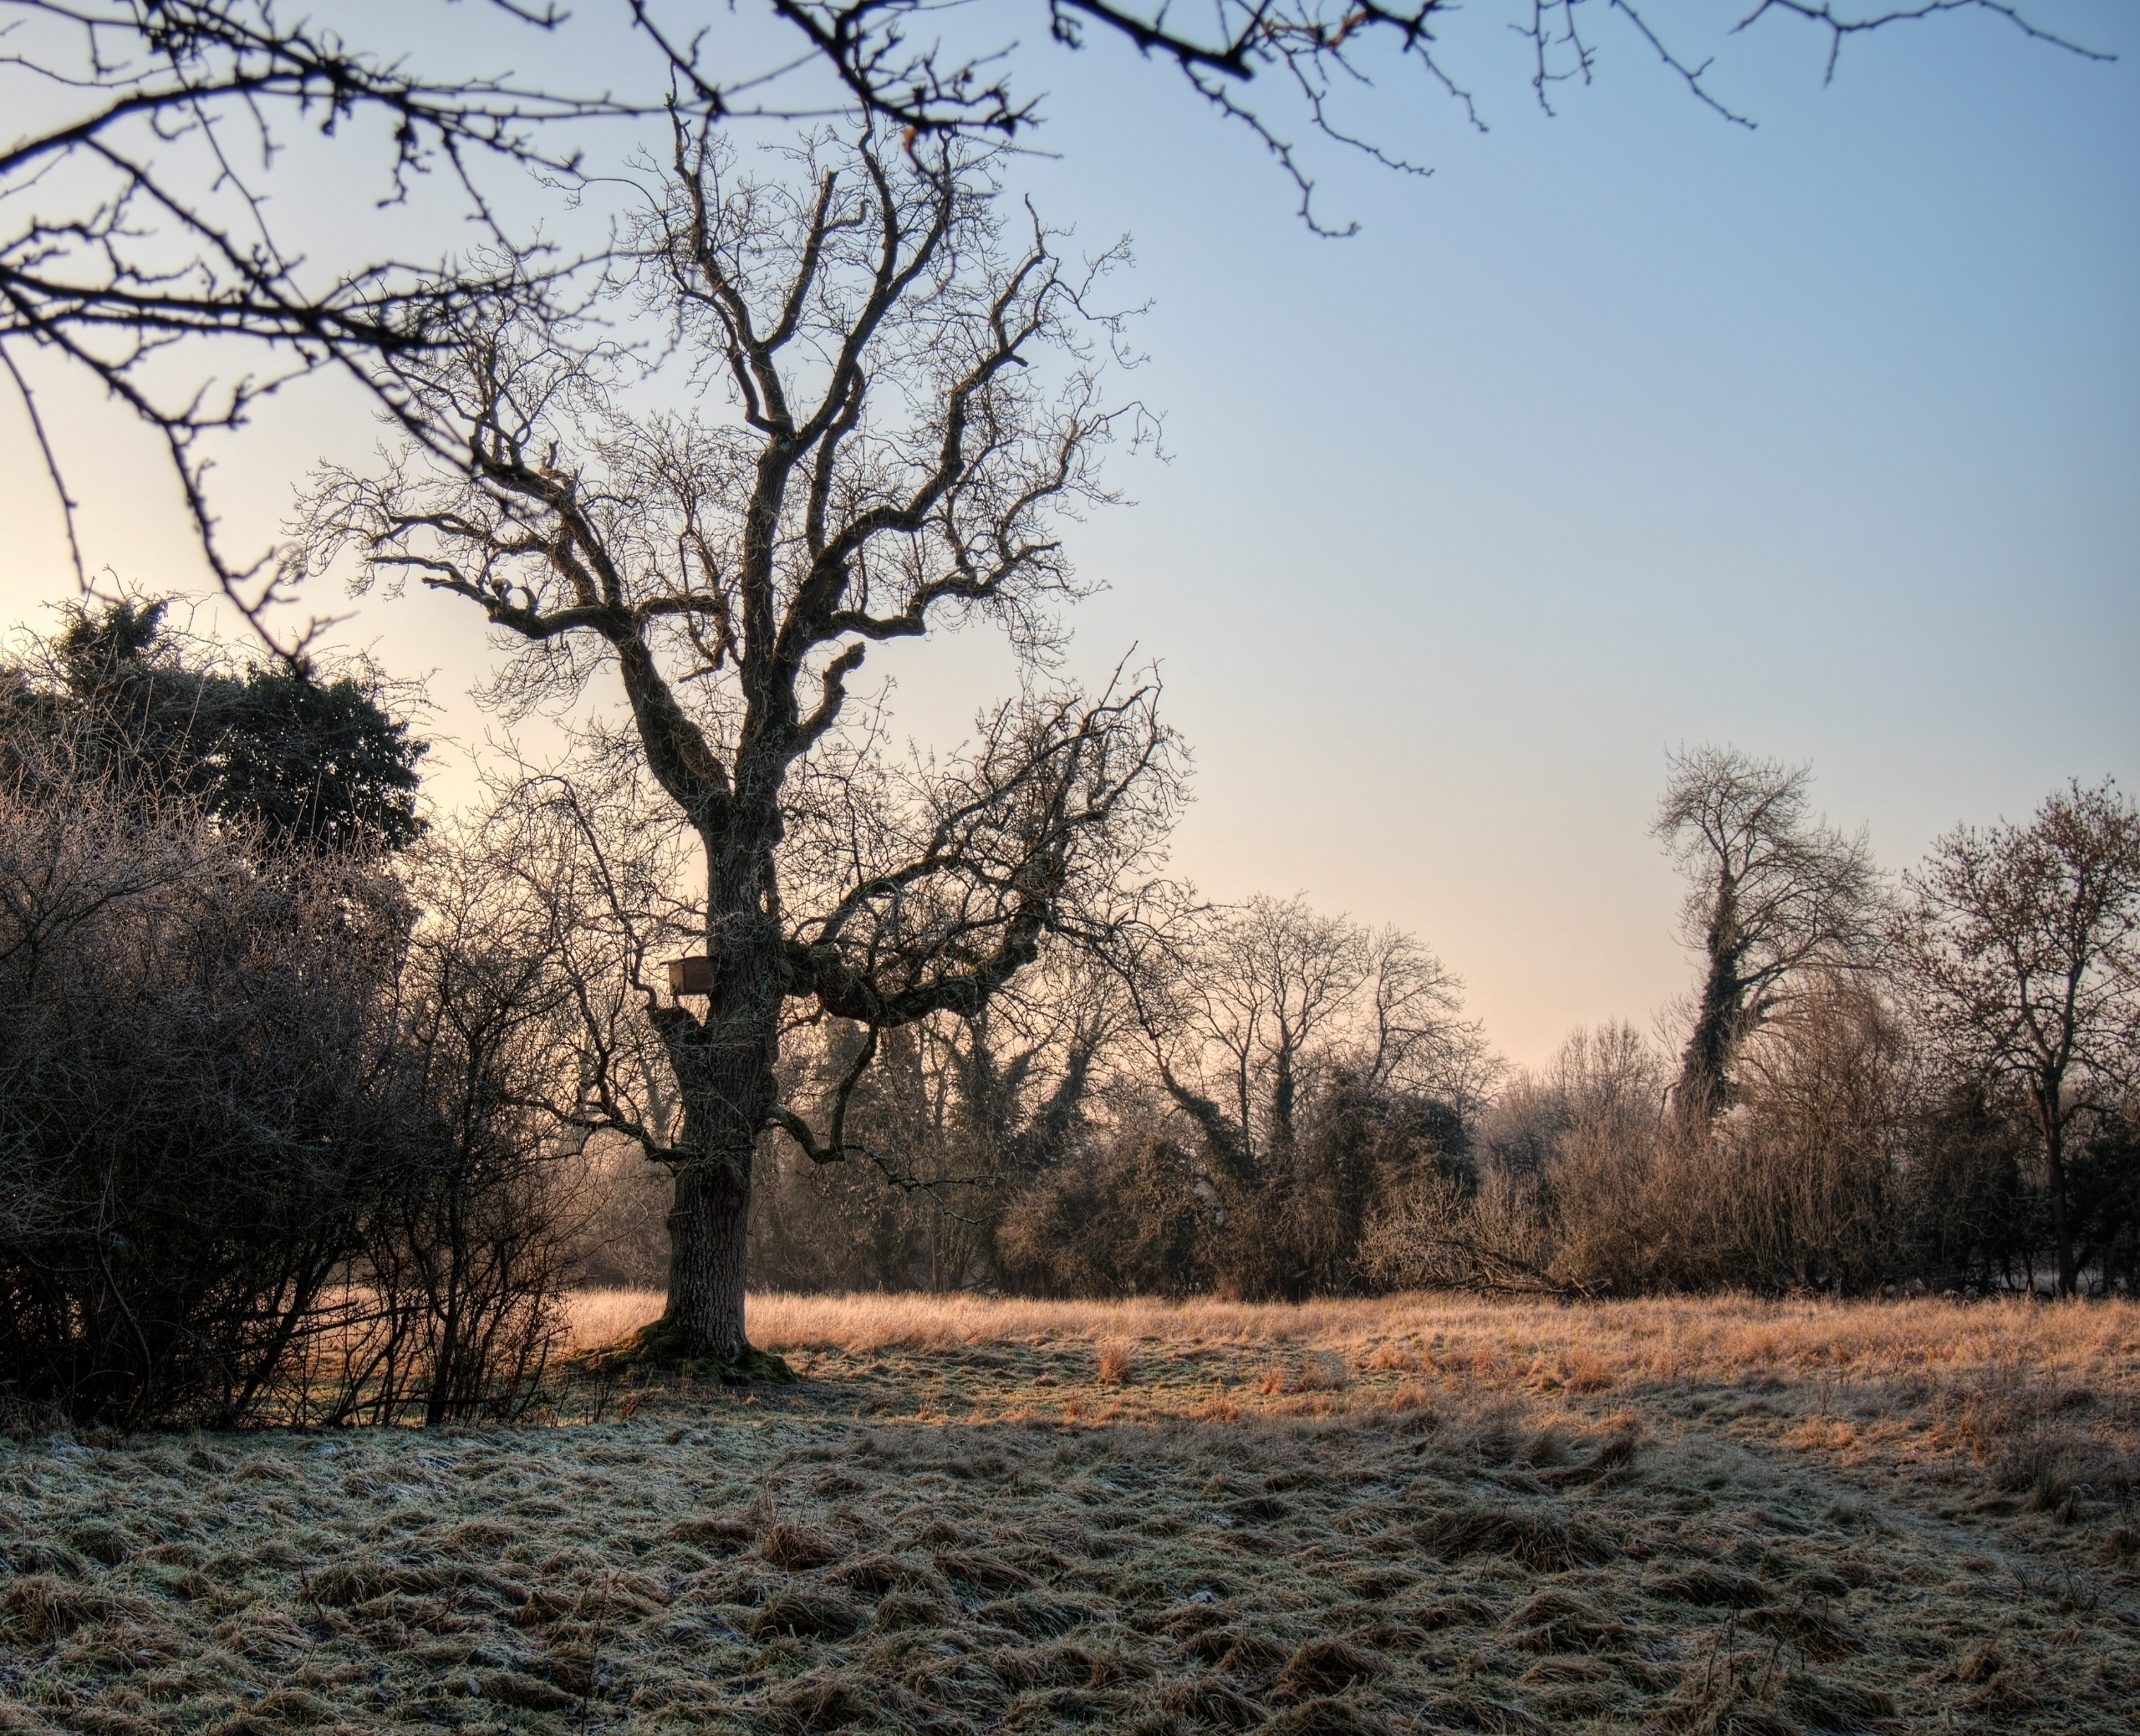 Frosty Tree tree frosty field W - neilhoward | ello